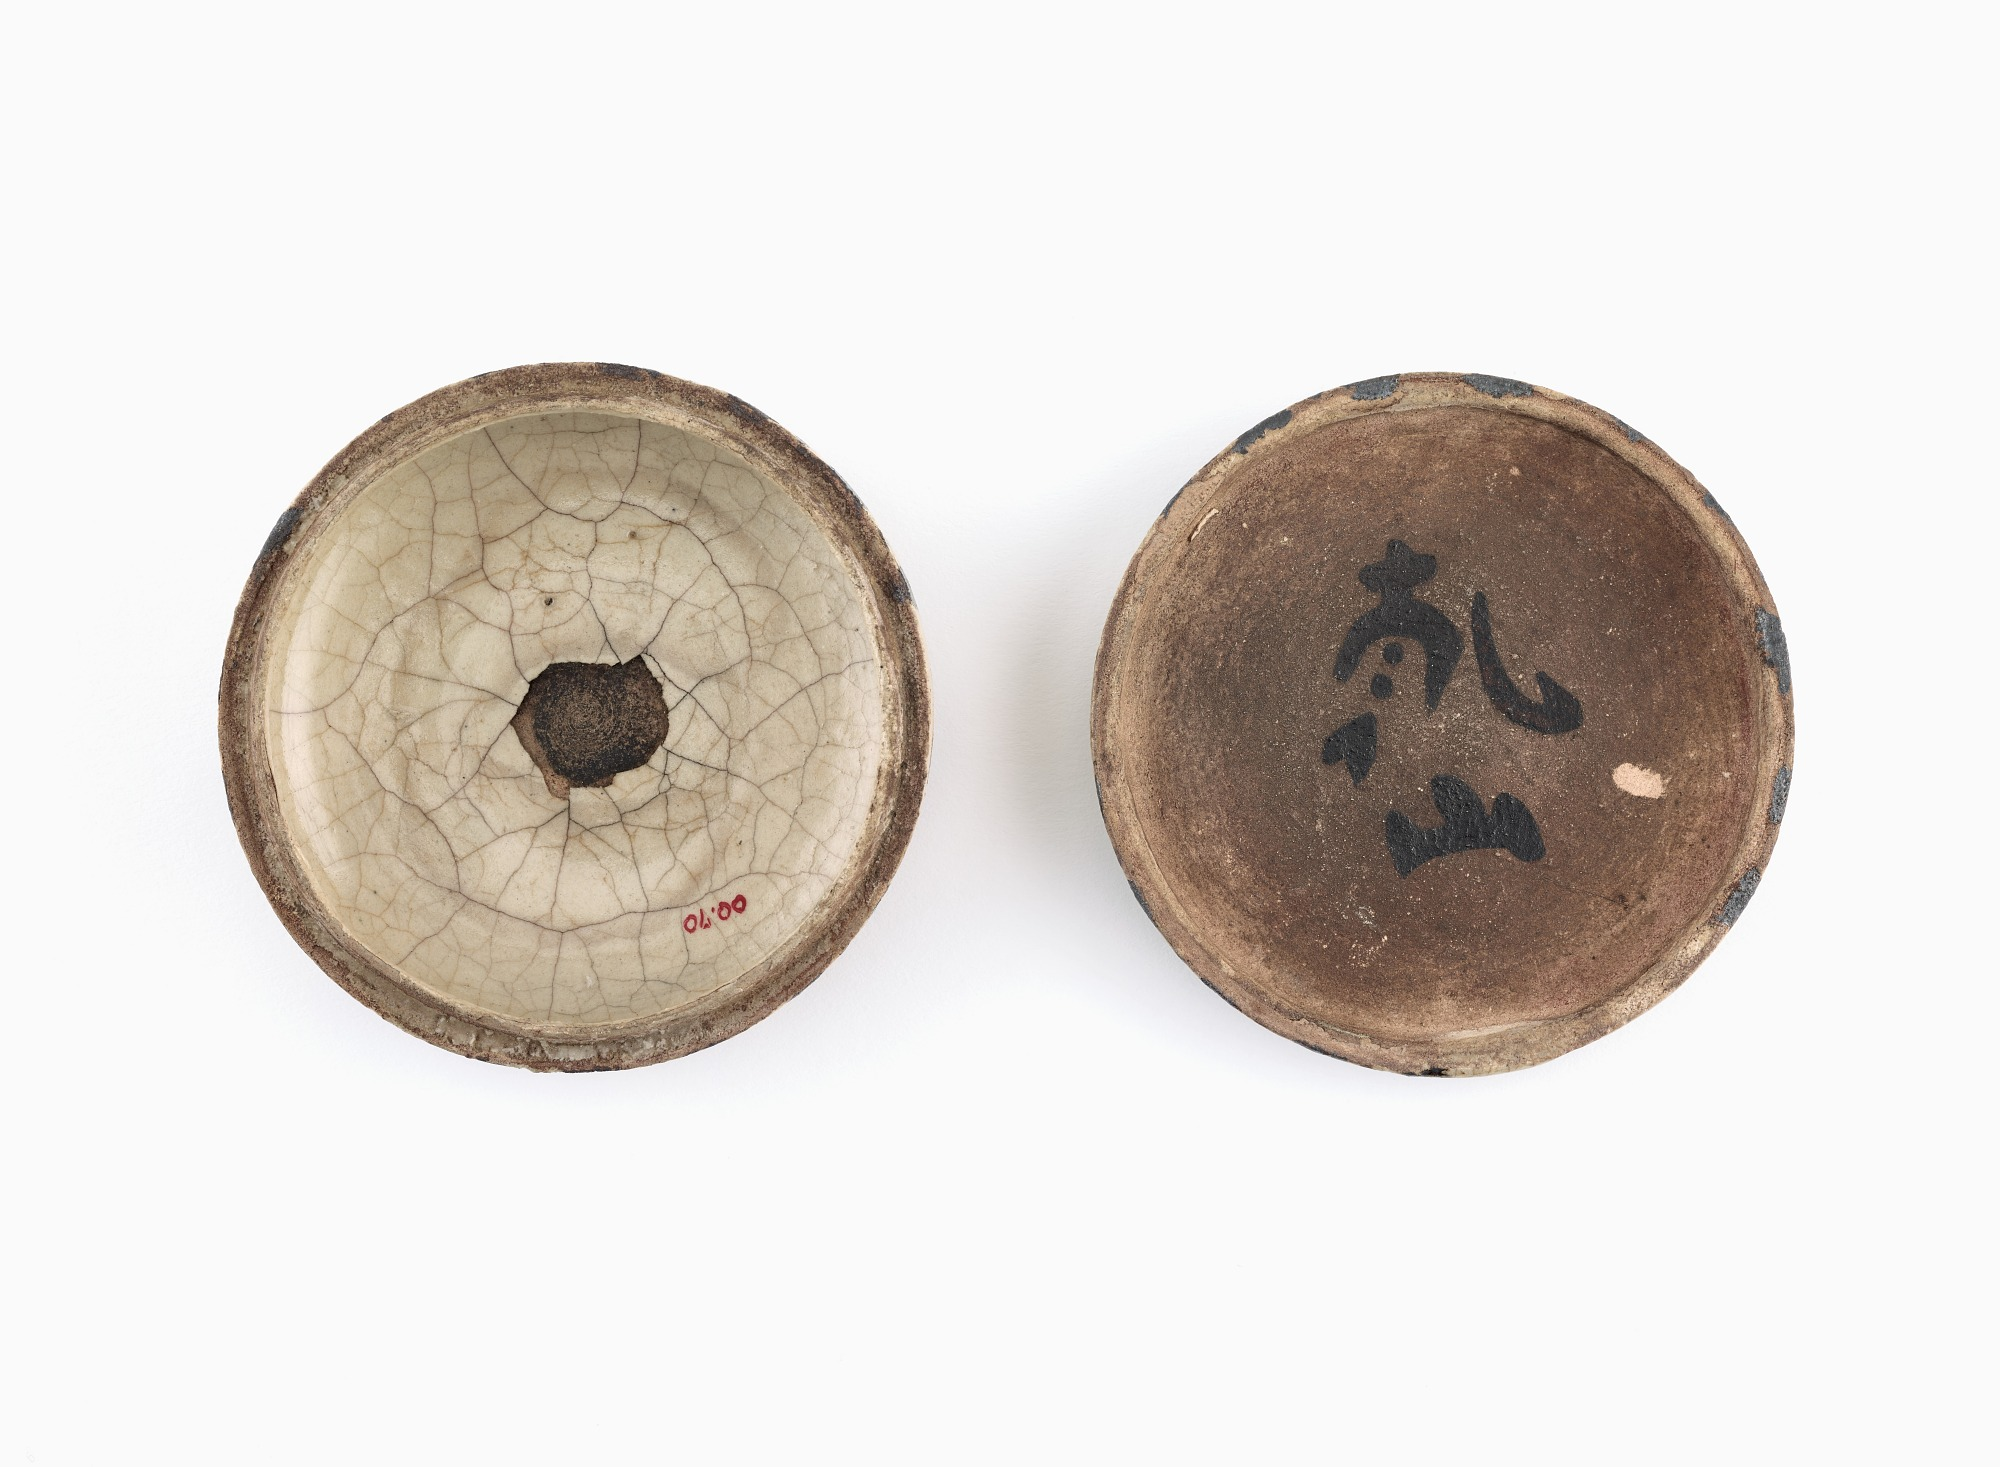 Oribe-style incense container with design of kudzu